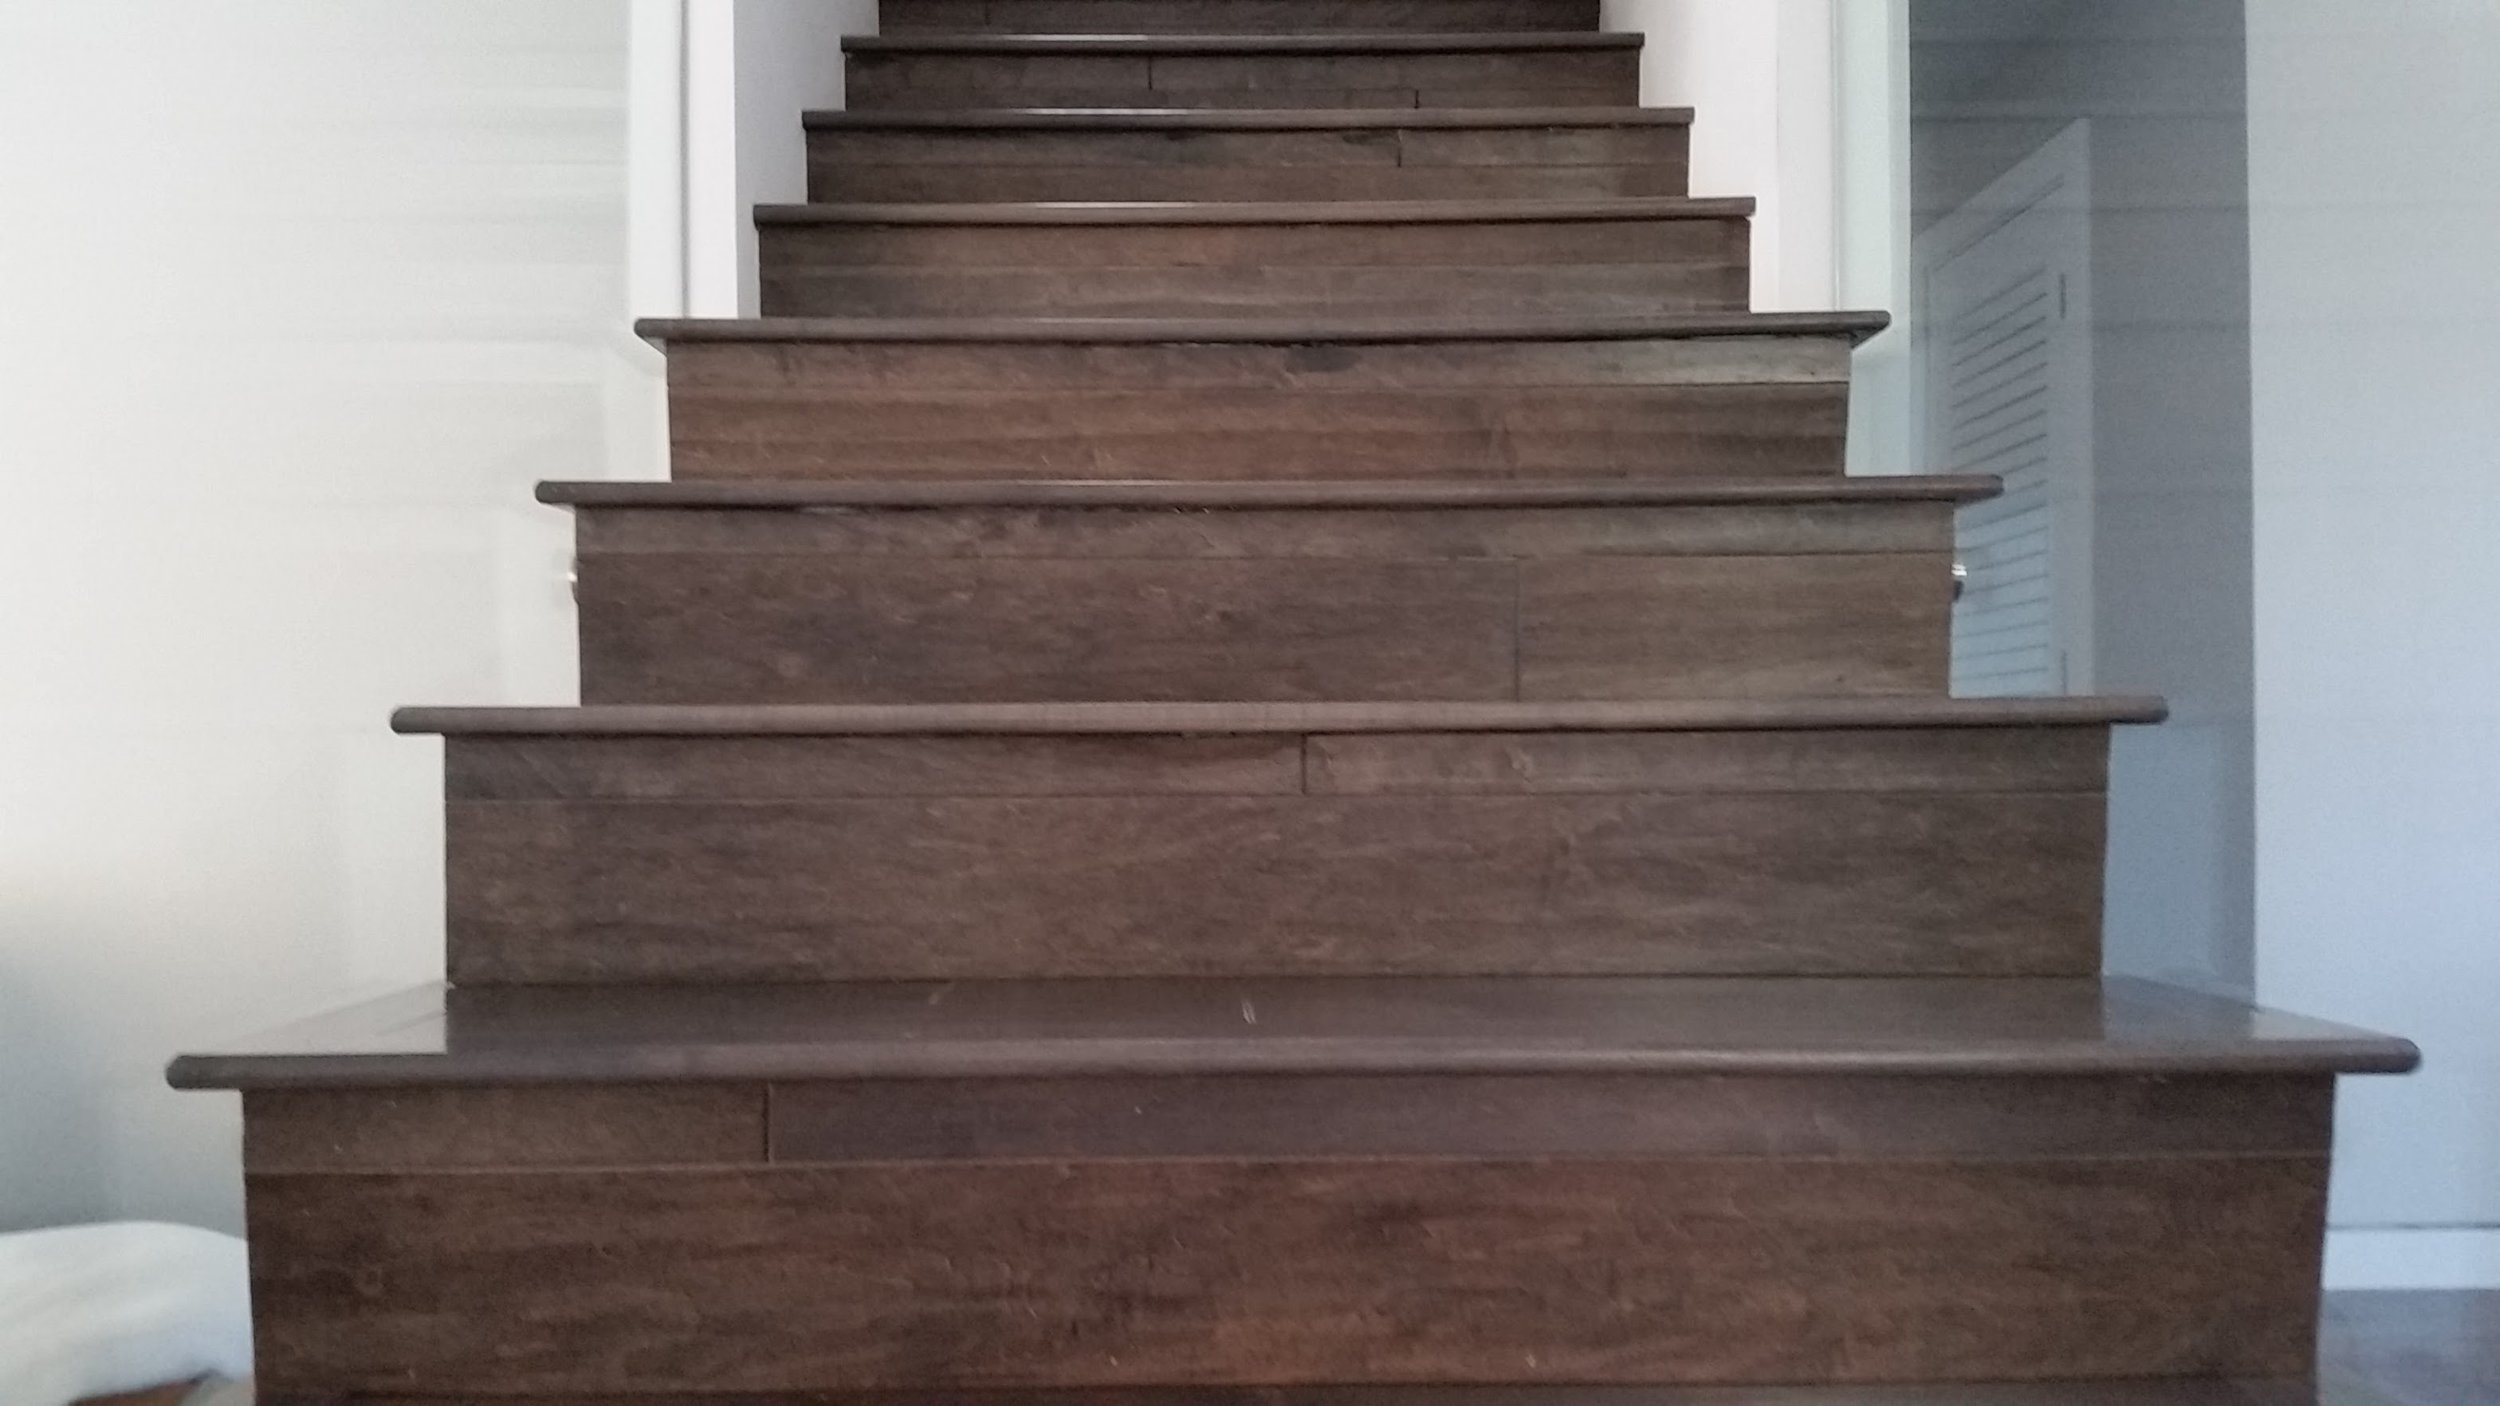 installing baseboard molding on stairs